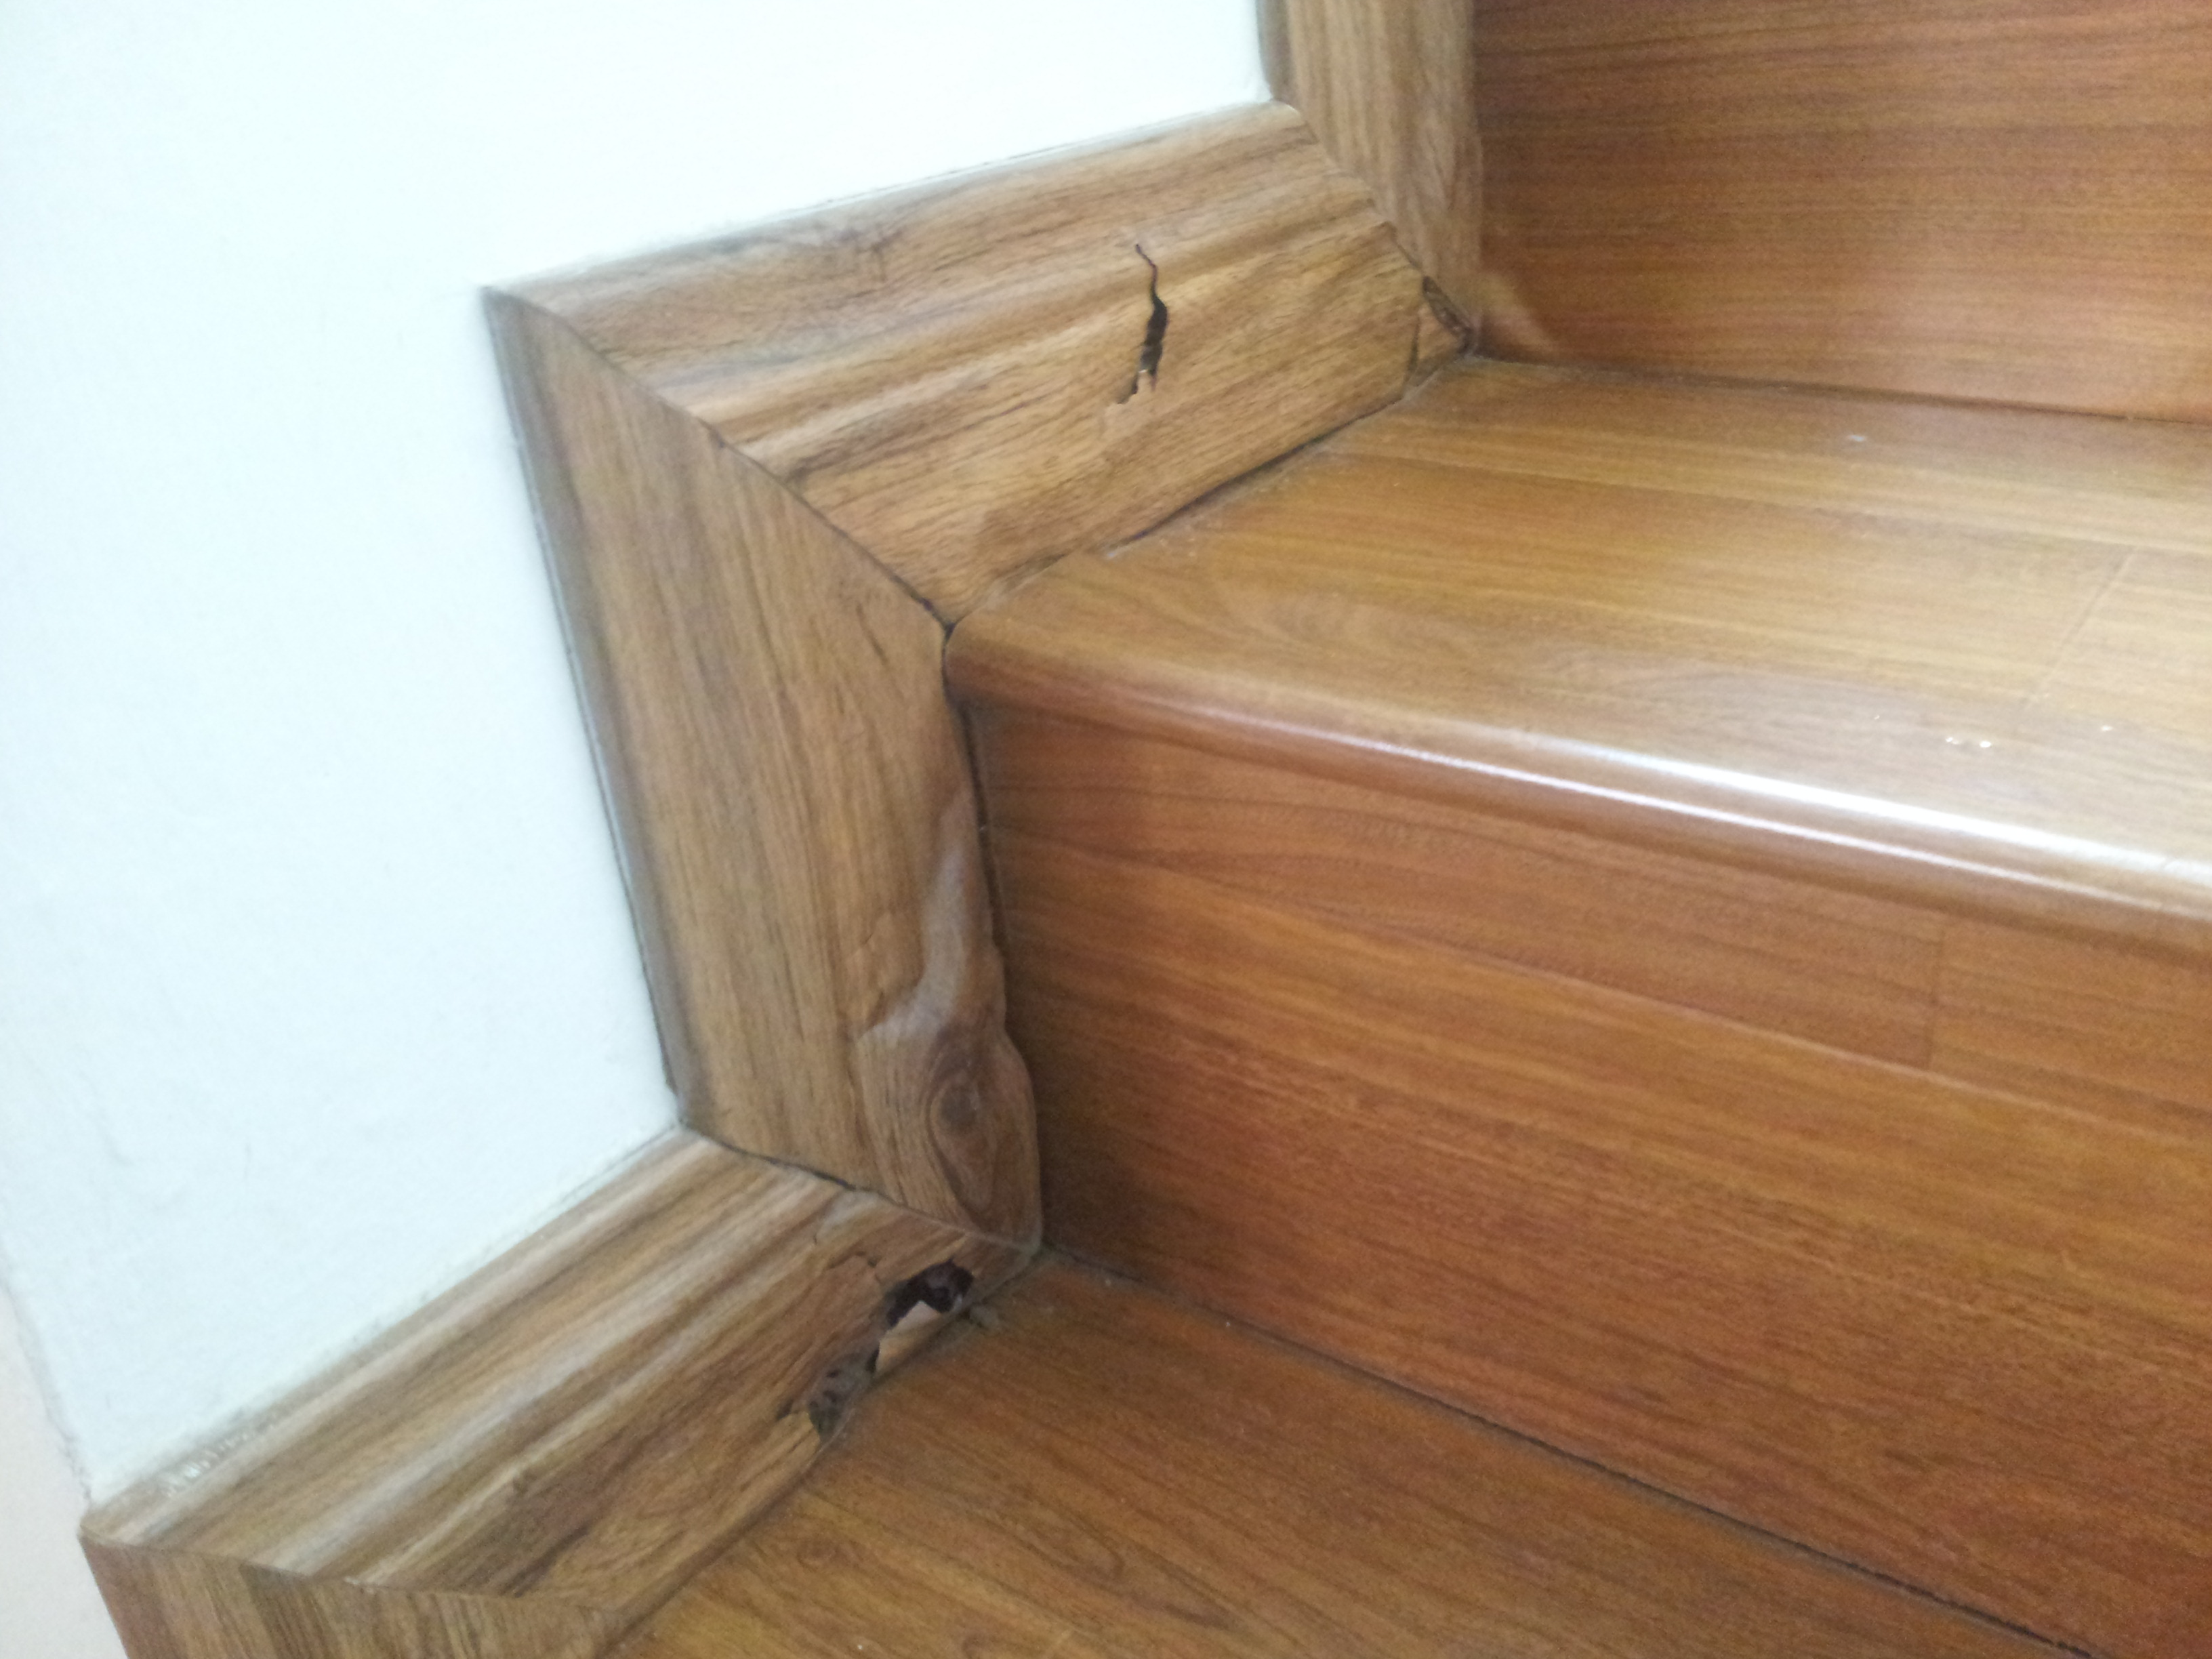 ALNASS Pest Control & Hygiene - Termite Attacking Wood Stair